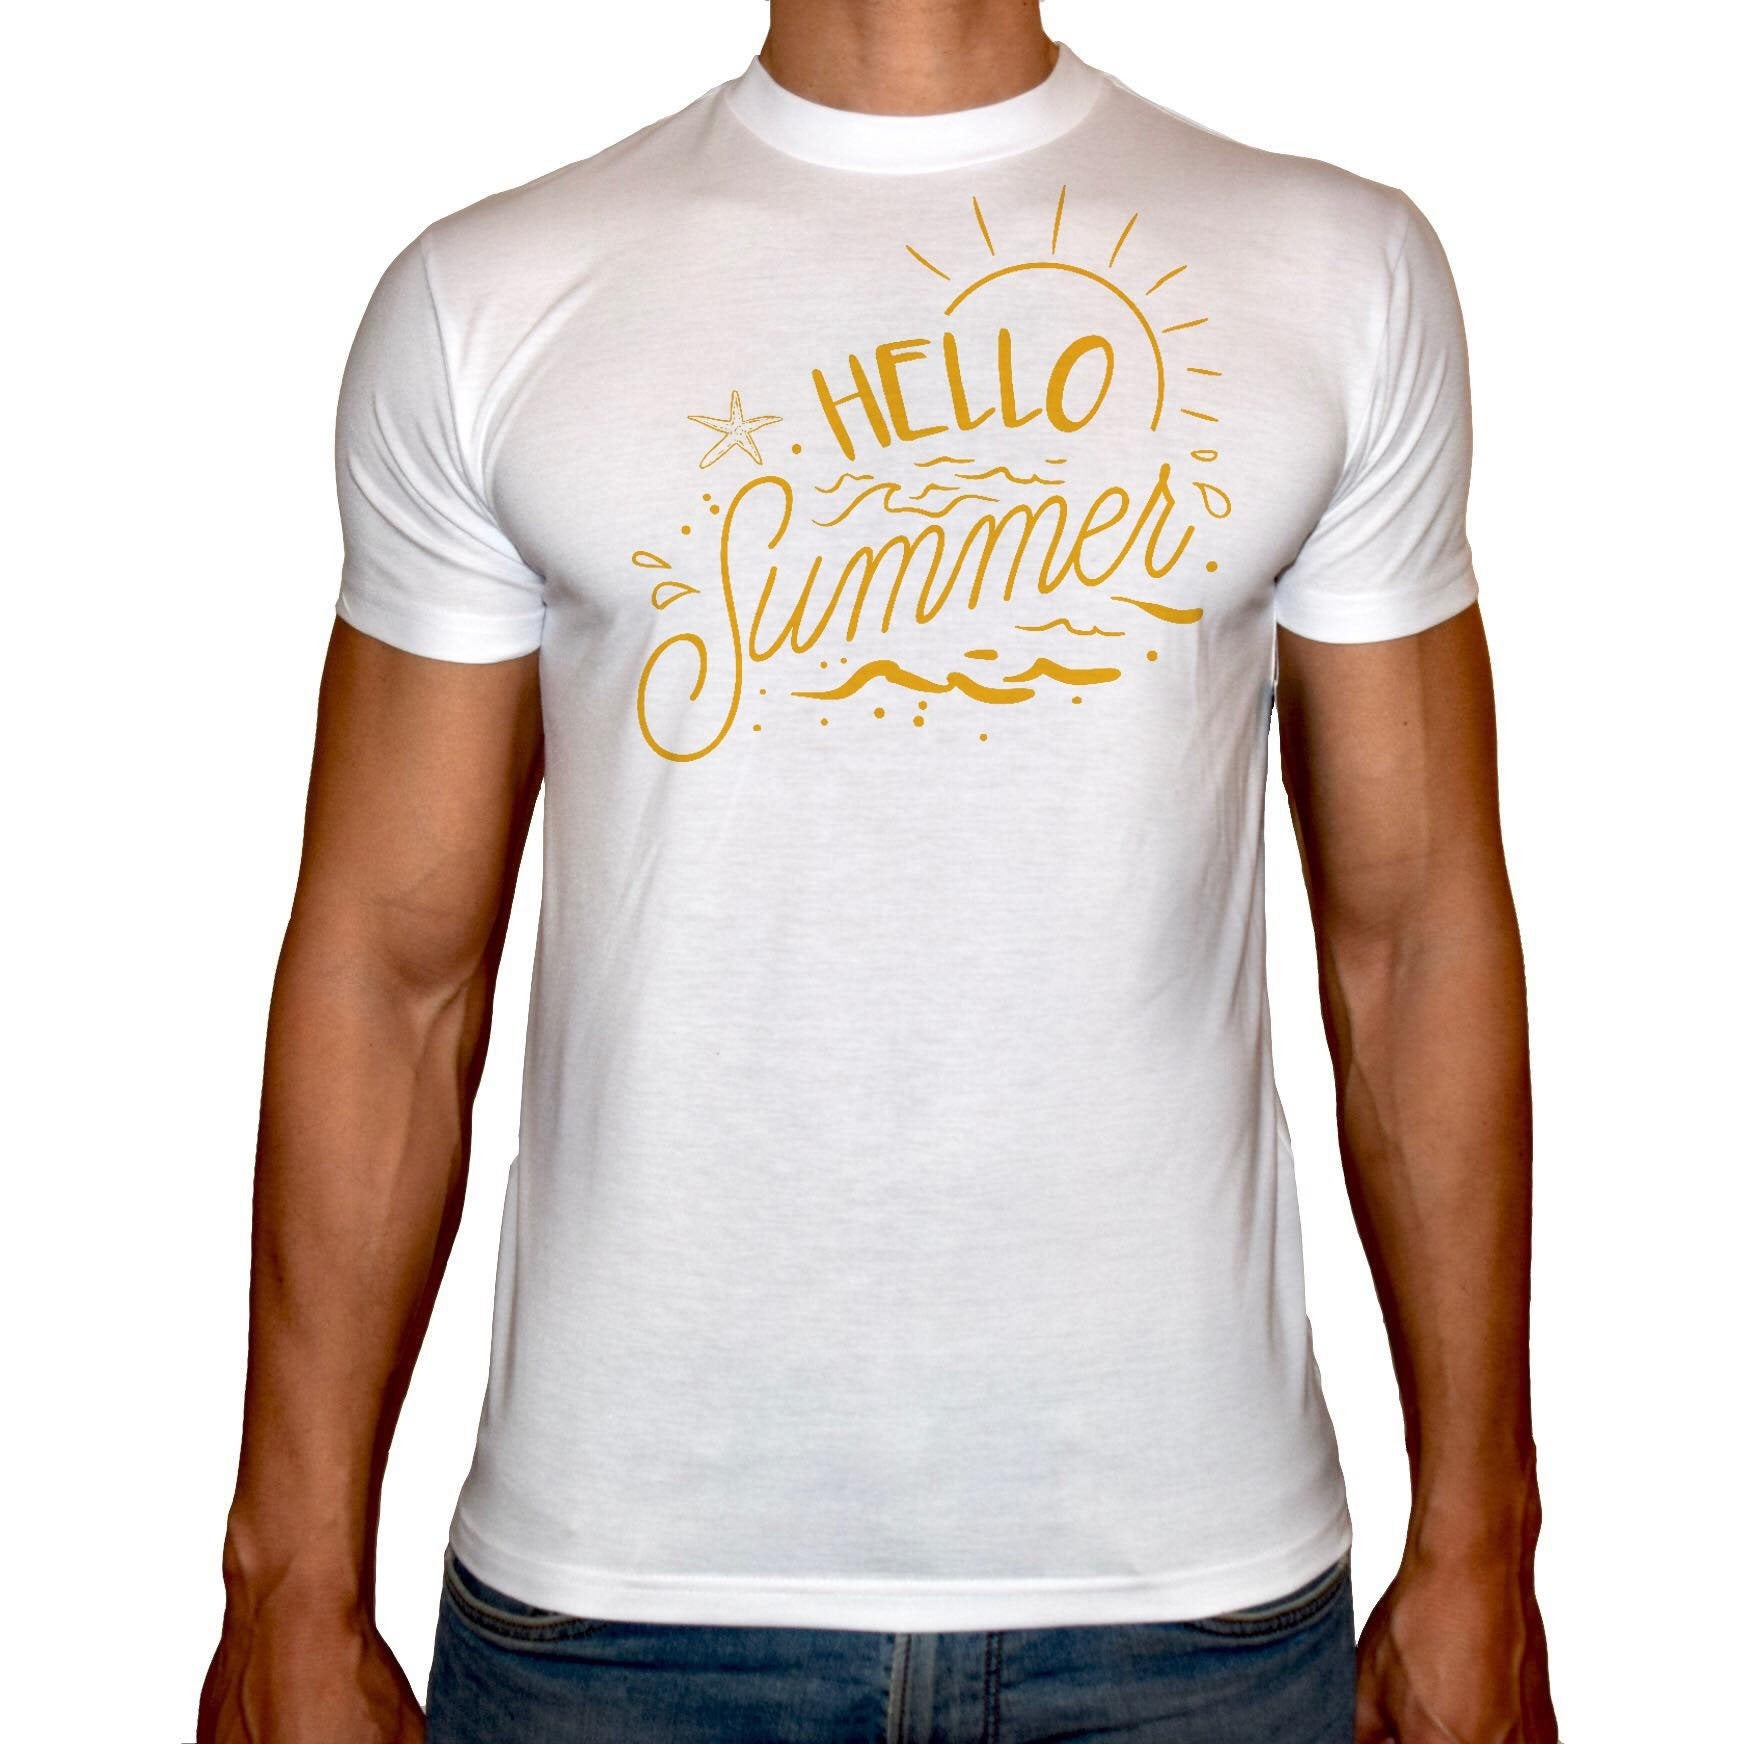 Phoenix WHITE Round Neck Printed T-Shirt Men (Summer)